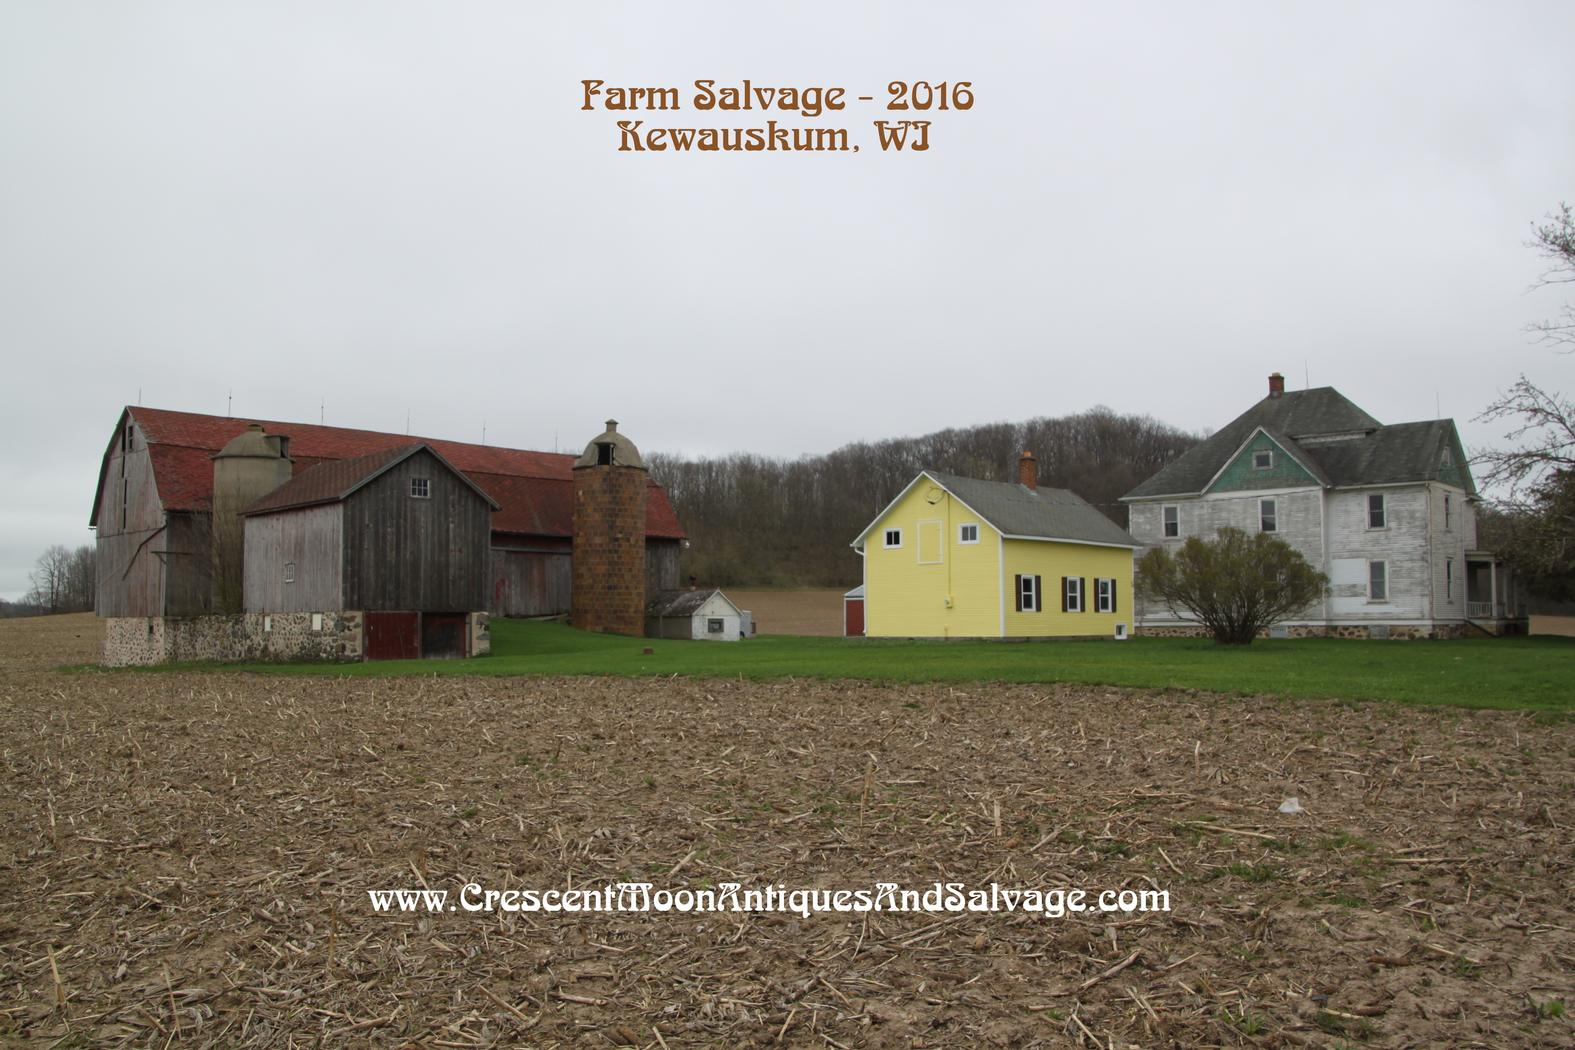 Kewauskum Farm Salvage